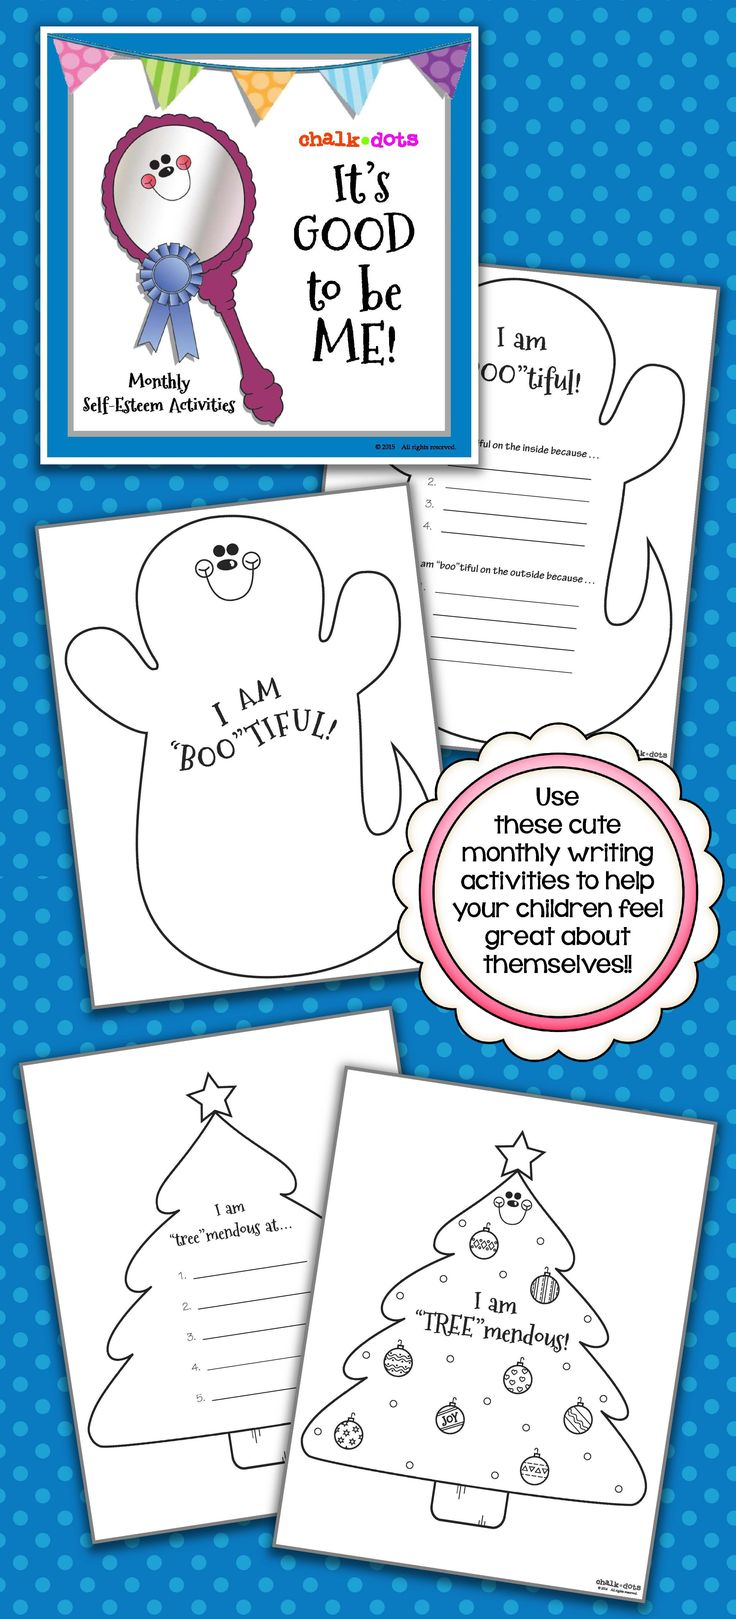 Self Esteem - This book contains a writing activity for each school month of the year. Each activity is meant to boost the children's self-esteem and help them focus on all their positive attributes! From writing reasons why they are boo-tiful in October to reasons why they are egg-ceptional in April, these activities will help your children feel terrific about themselves!